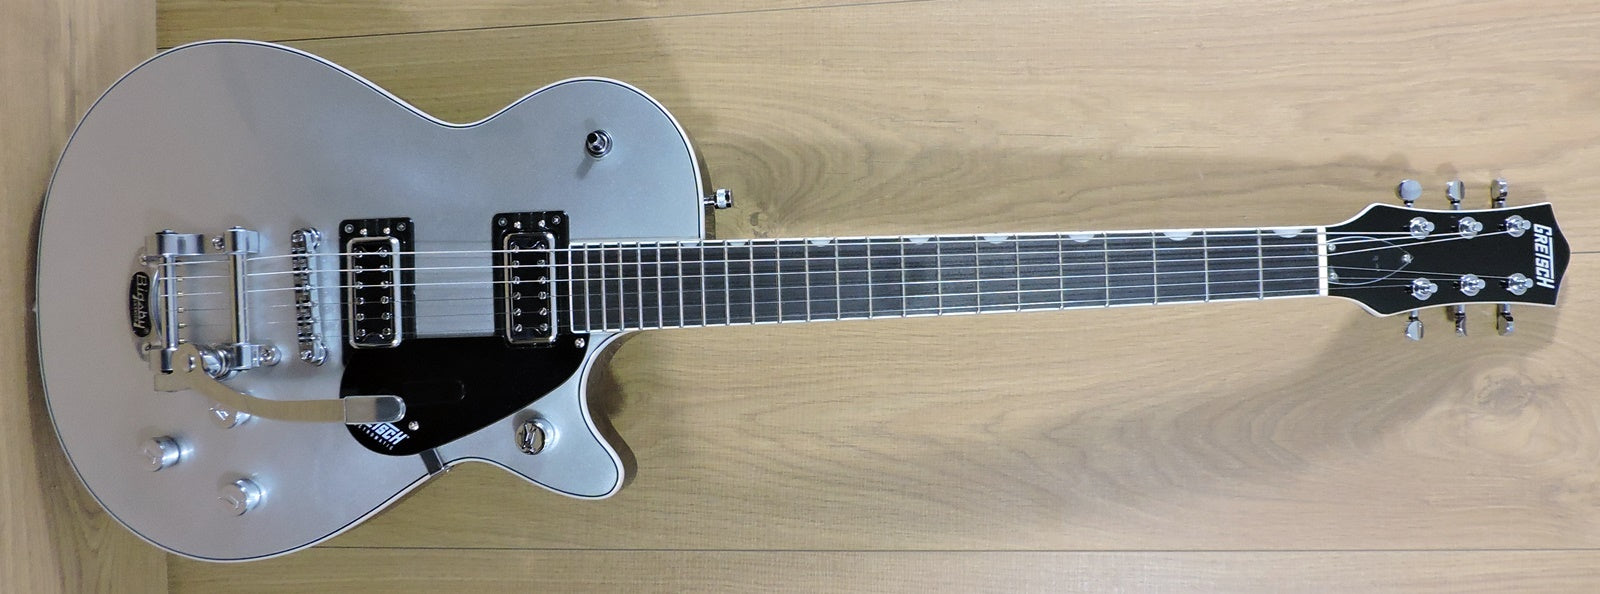 Gretsch G5230T - Used